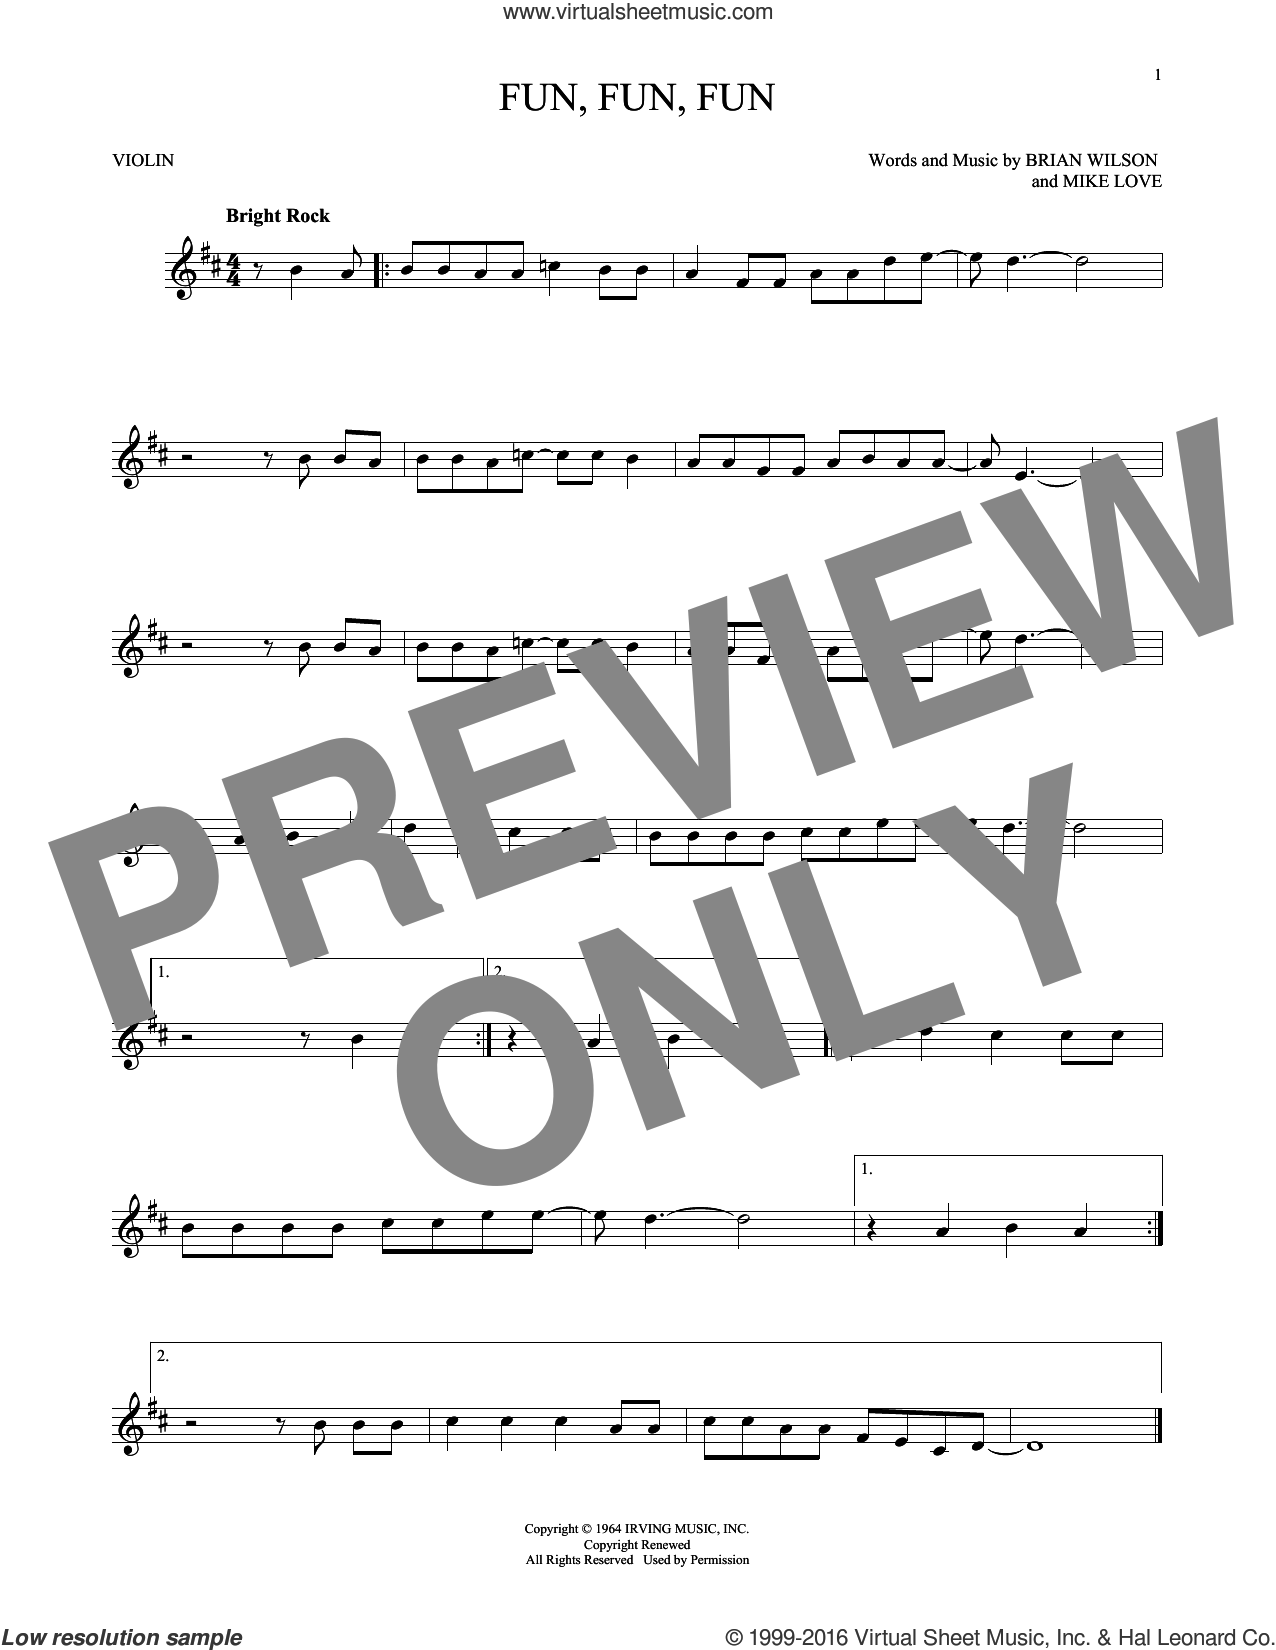 Fun, Fun, Fun sheet music for violin solo by The Beach Boys, Brian Wilson and Mike Love, intermediate